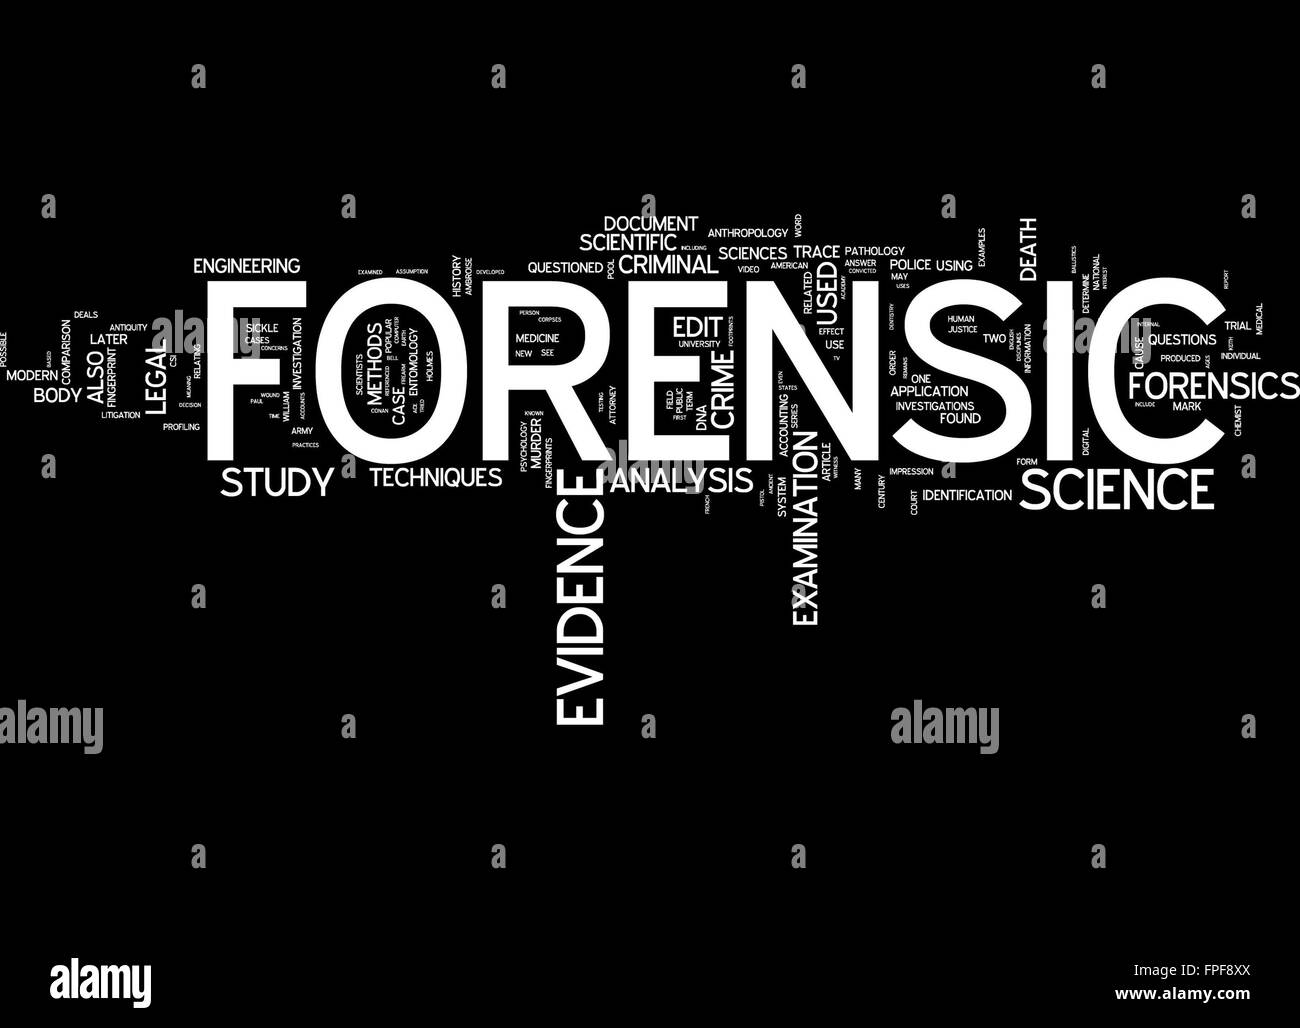 an analysis of the breakdown of evidence in forensic science Andincludestheanalysisofavarietyoffluidsandtissuesamplesto whyandwhenisforensictoxicologyused  (thebody'sbreakdownproducts).